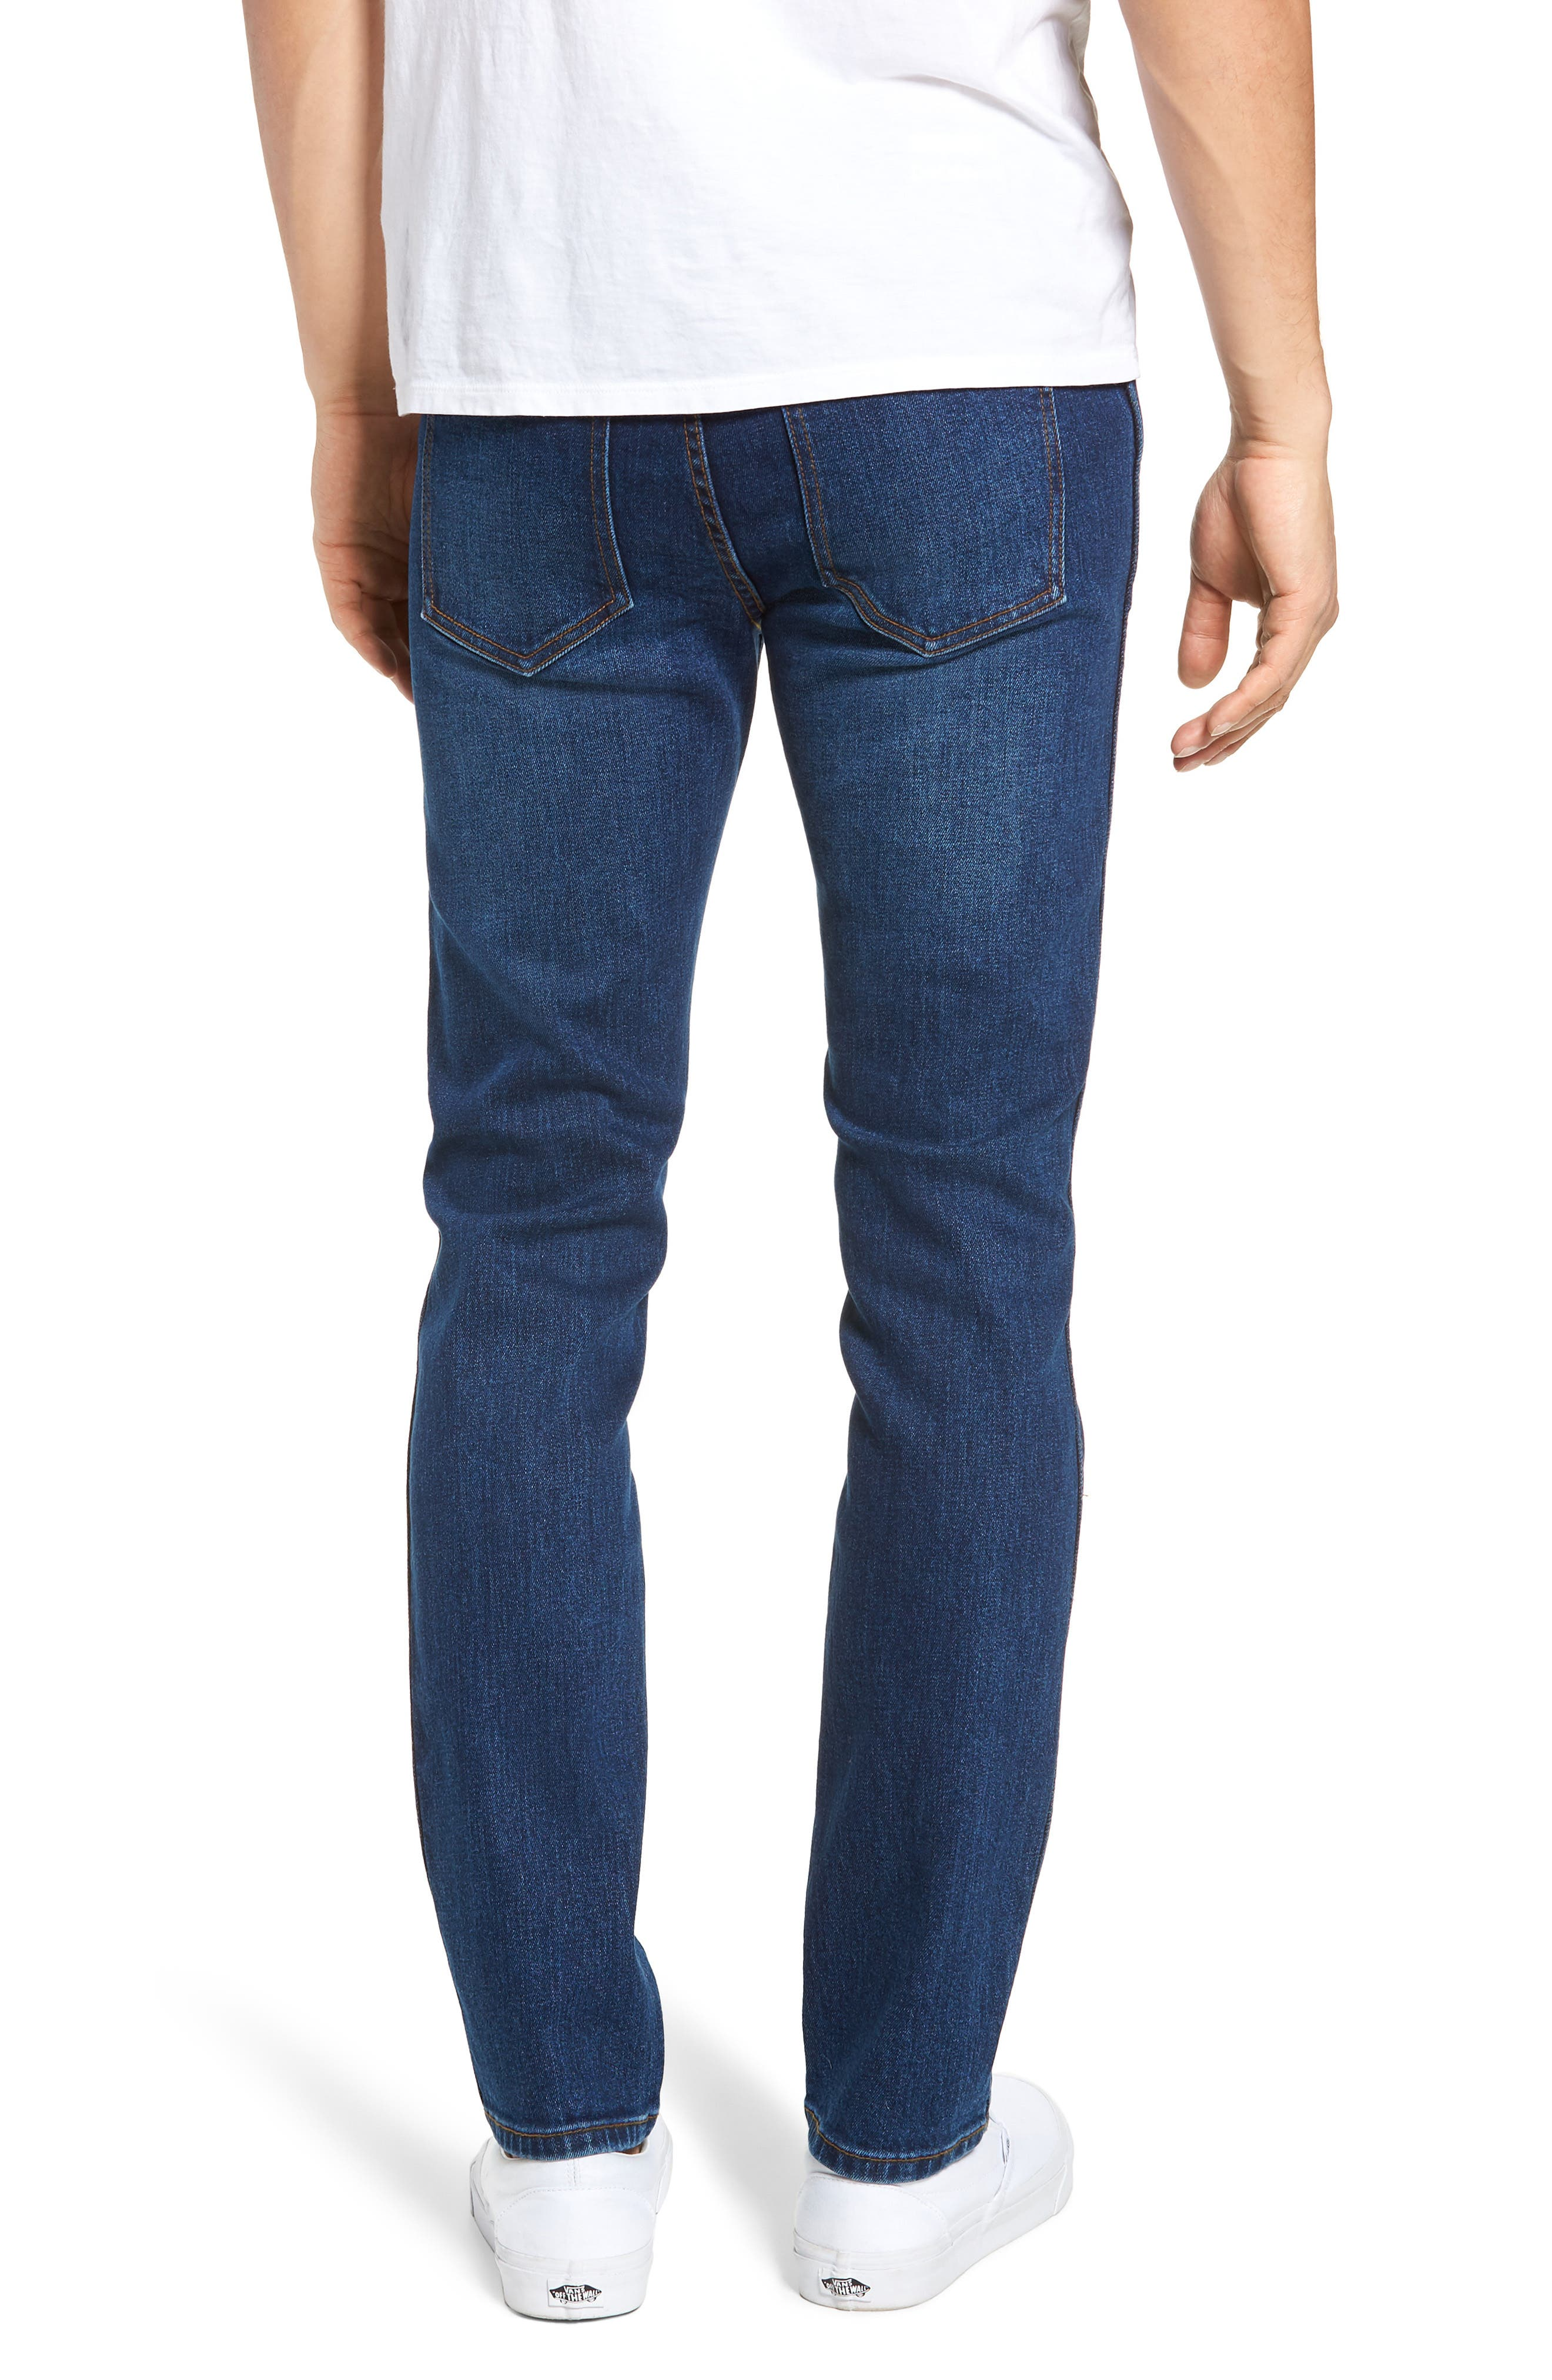 Snap Skinny Fit Jeans,                             Alternate thumbnail 2, color,                             DARK SHADED BLUE